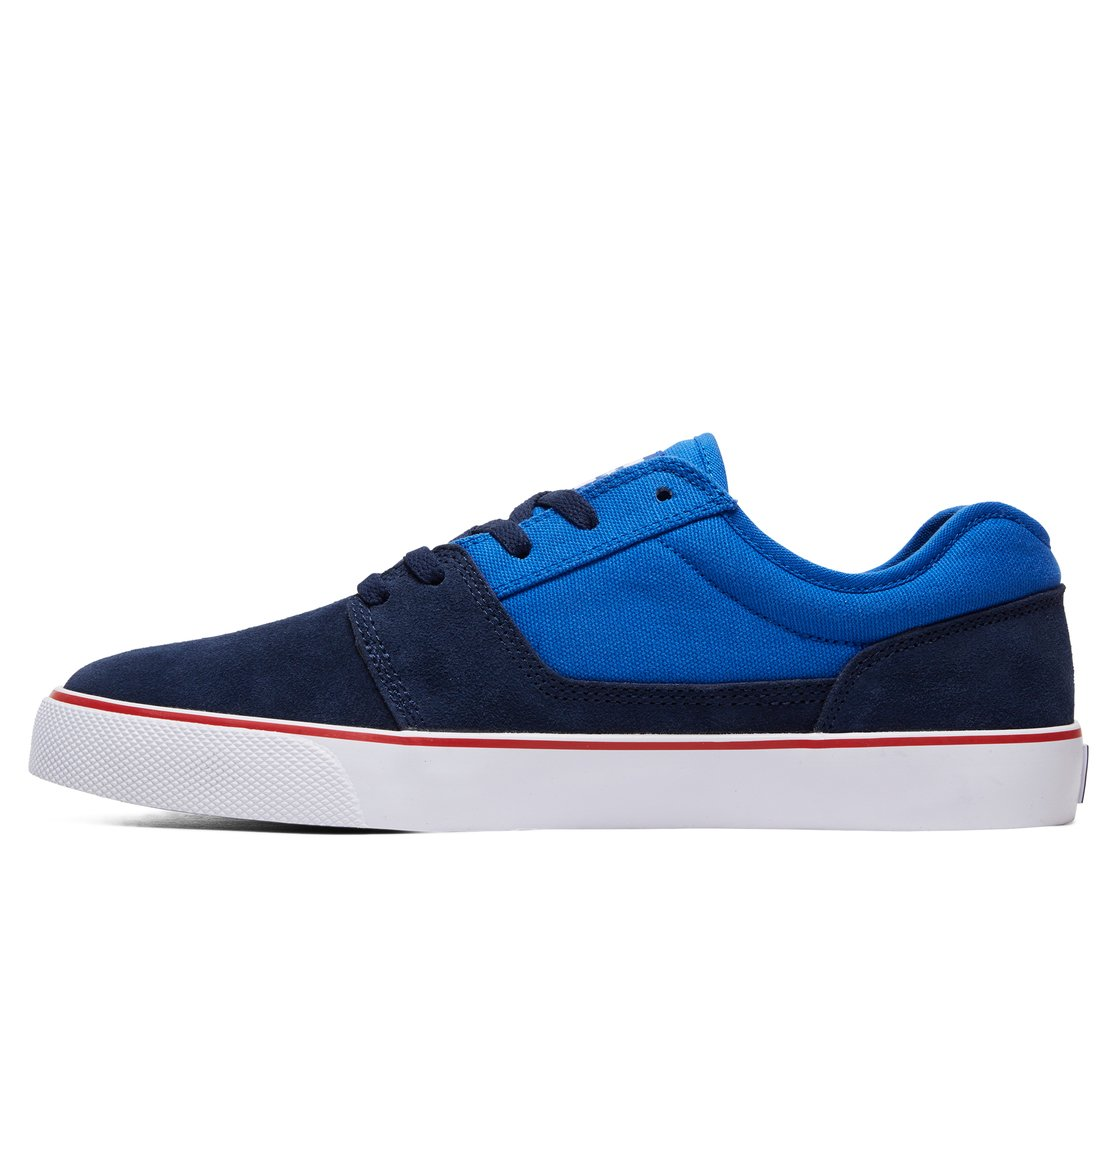 DC-Shoes-Tonik-Baskets-pour-Homme-302905 miniature 17